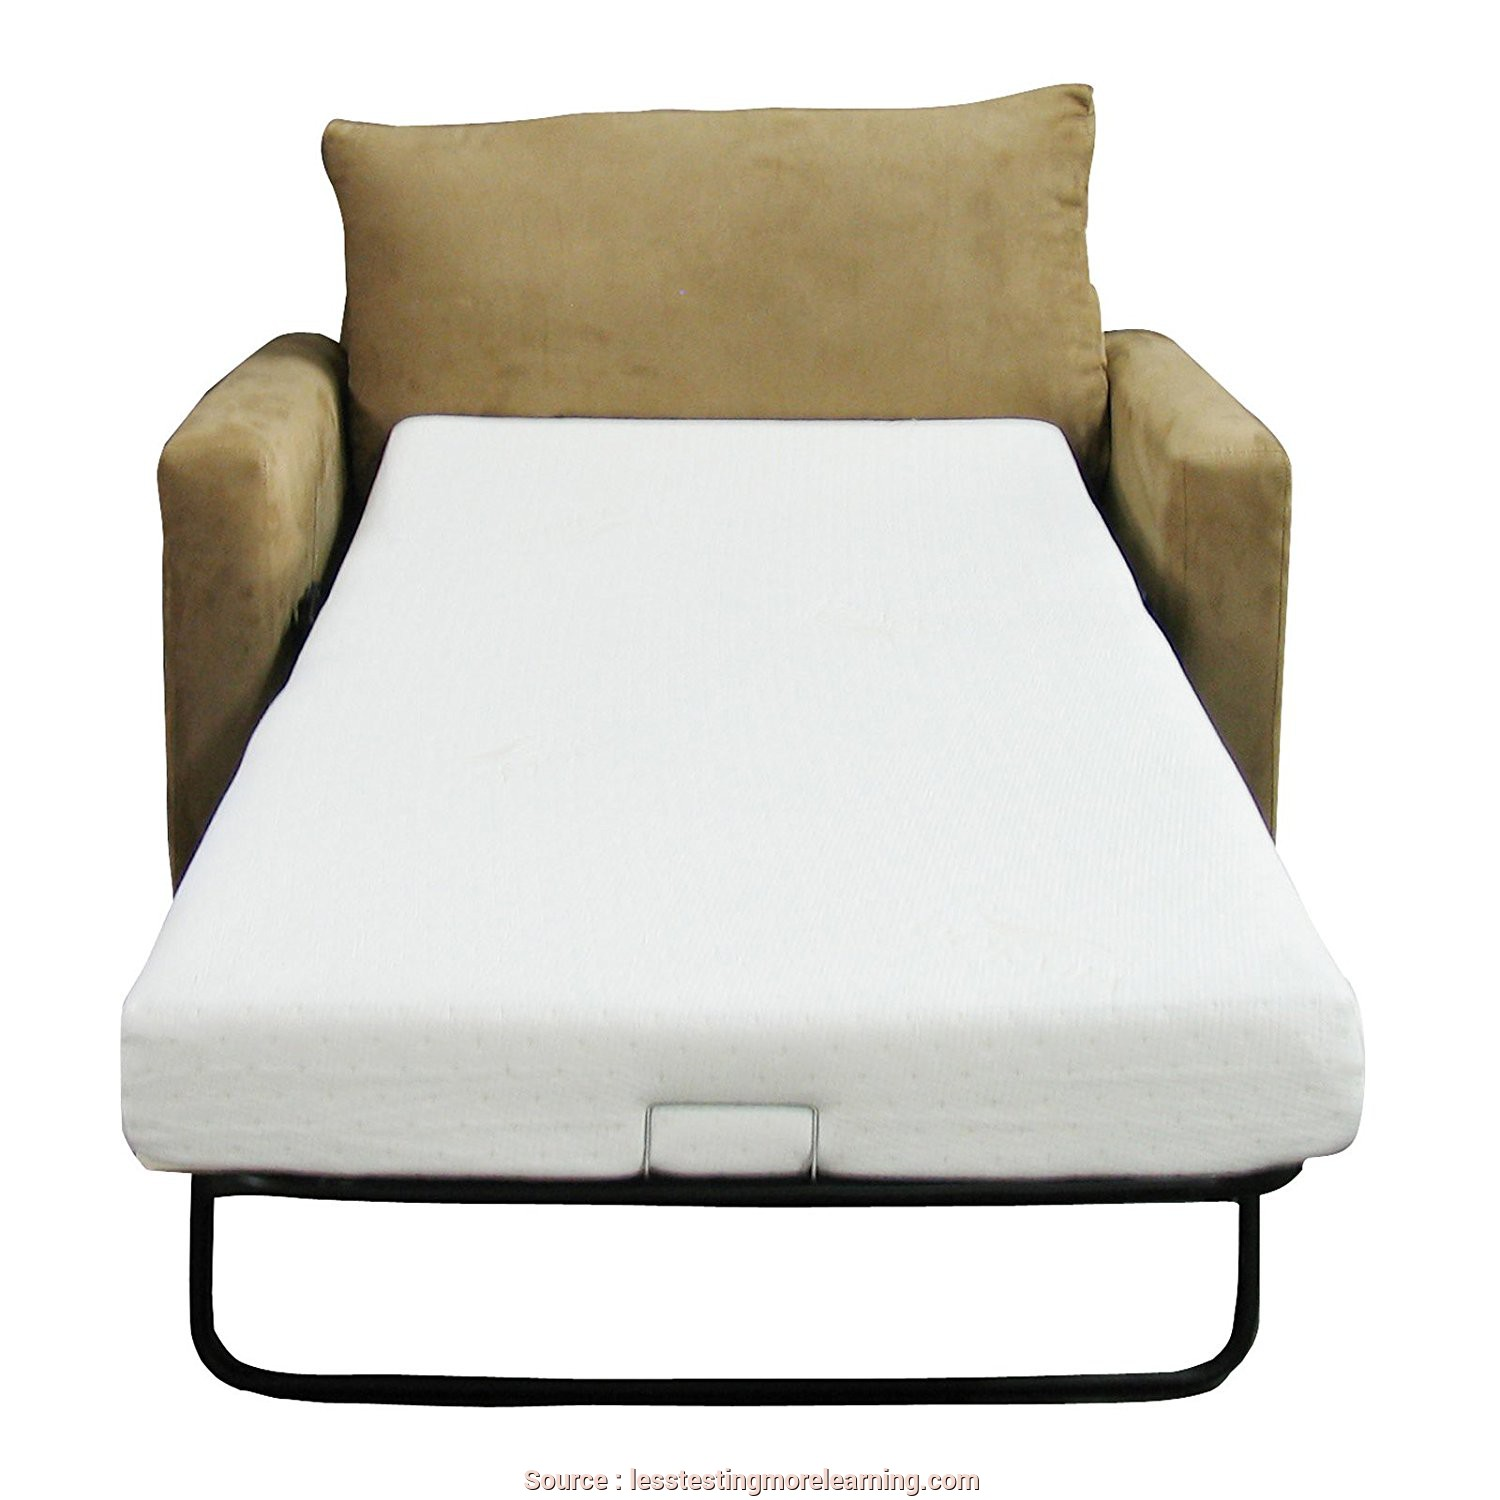 Ikea Twin Futon Chair, Classy Furniture: Sleeper Chair Ikea With Different Styles, Fabrics To